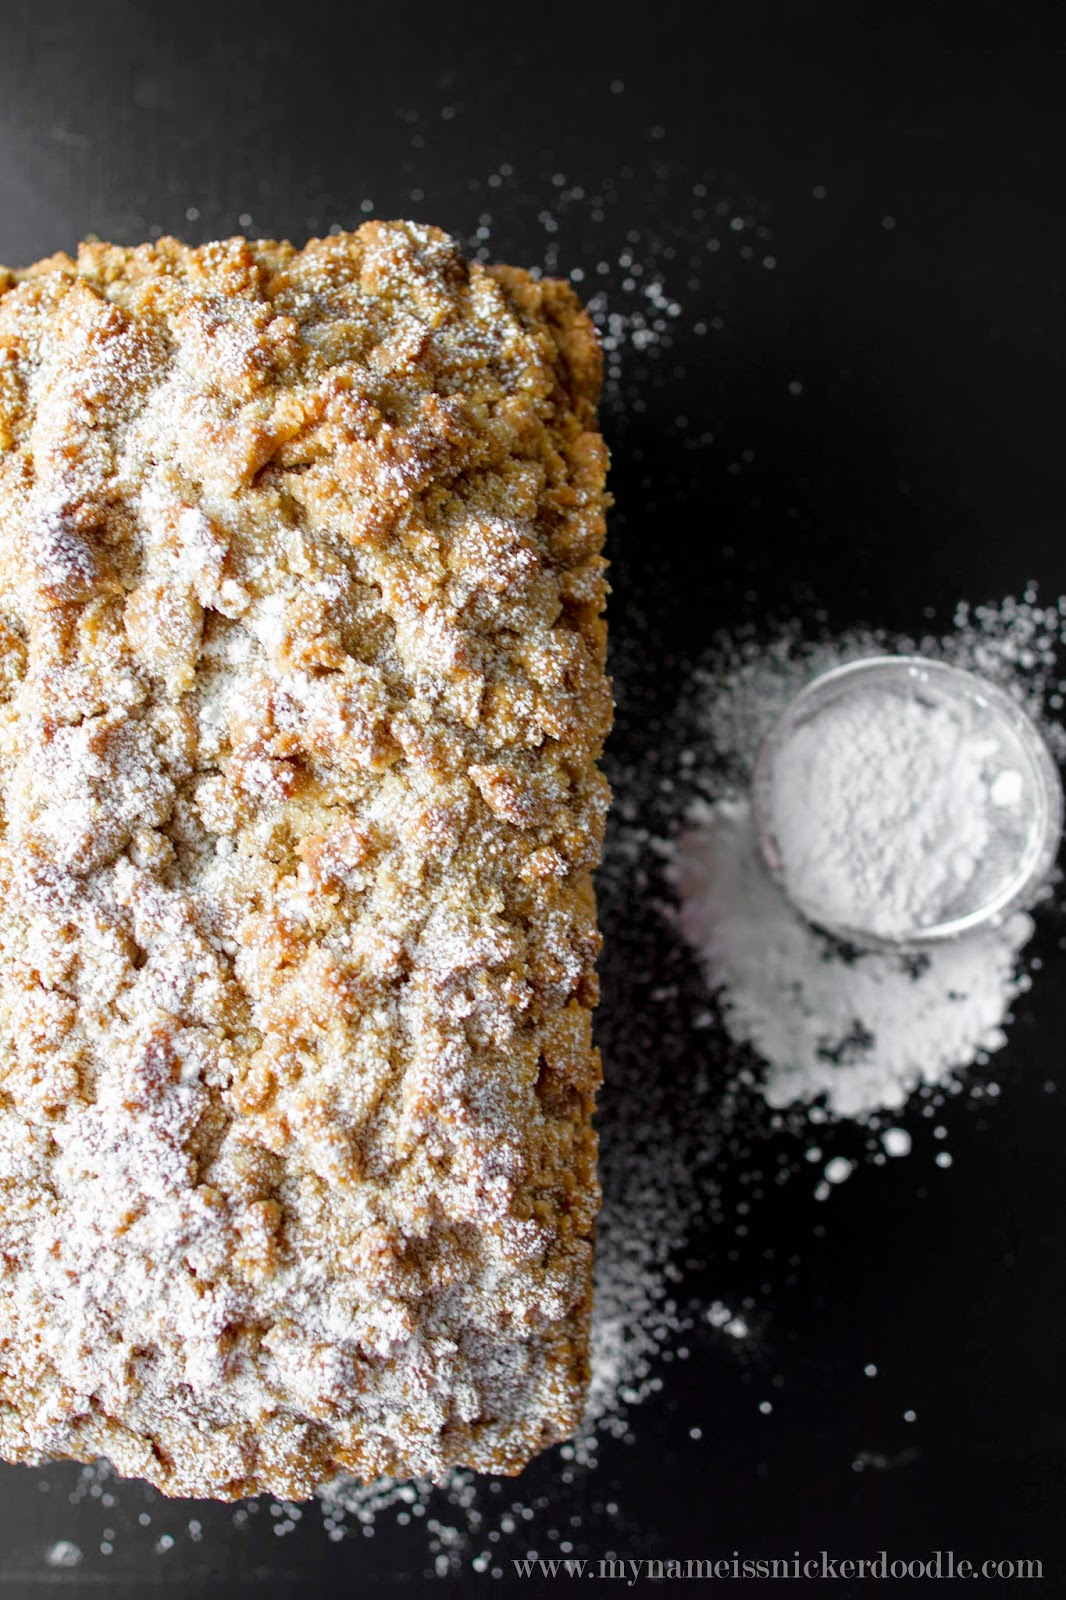 Sprinkled with the right amount of powdered sugar, this Streusel Pumpkin Chocolate Chip bread is divine!  |  My Name Is Snickerdoodle